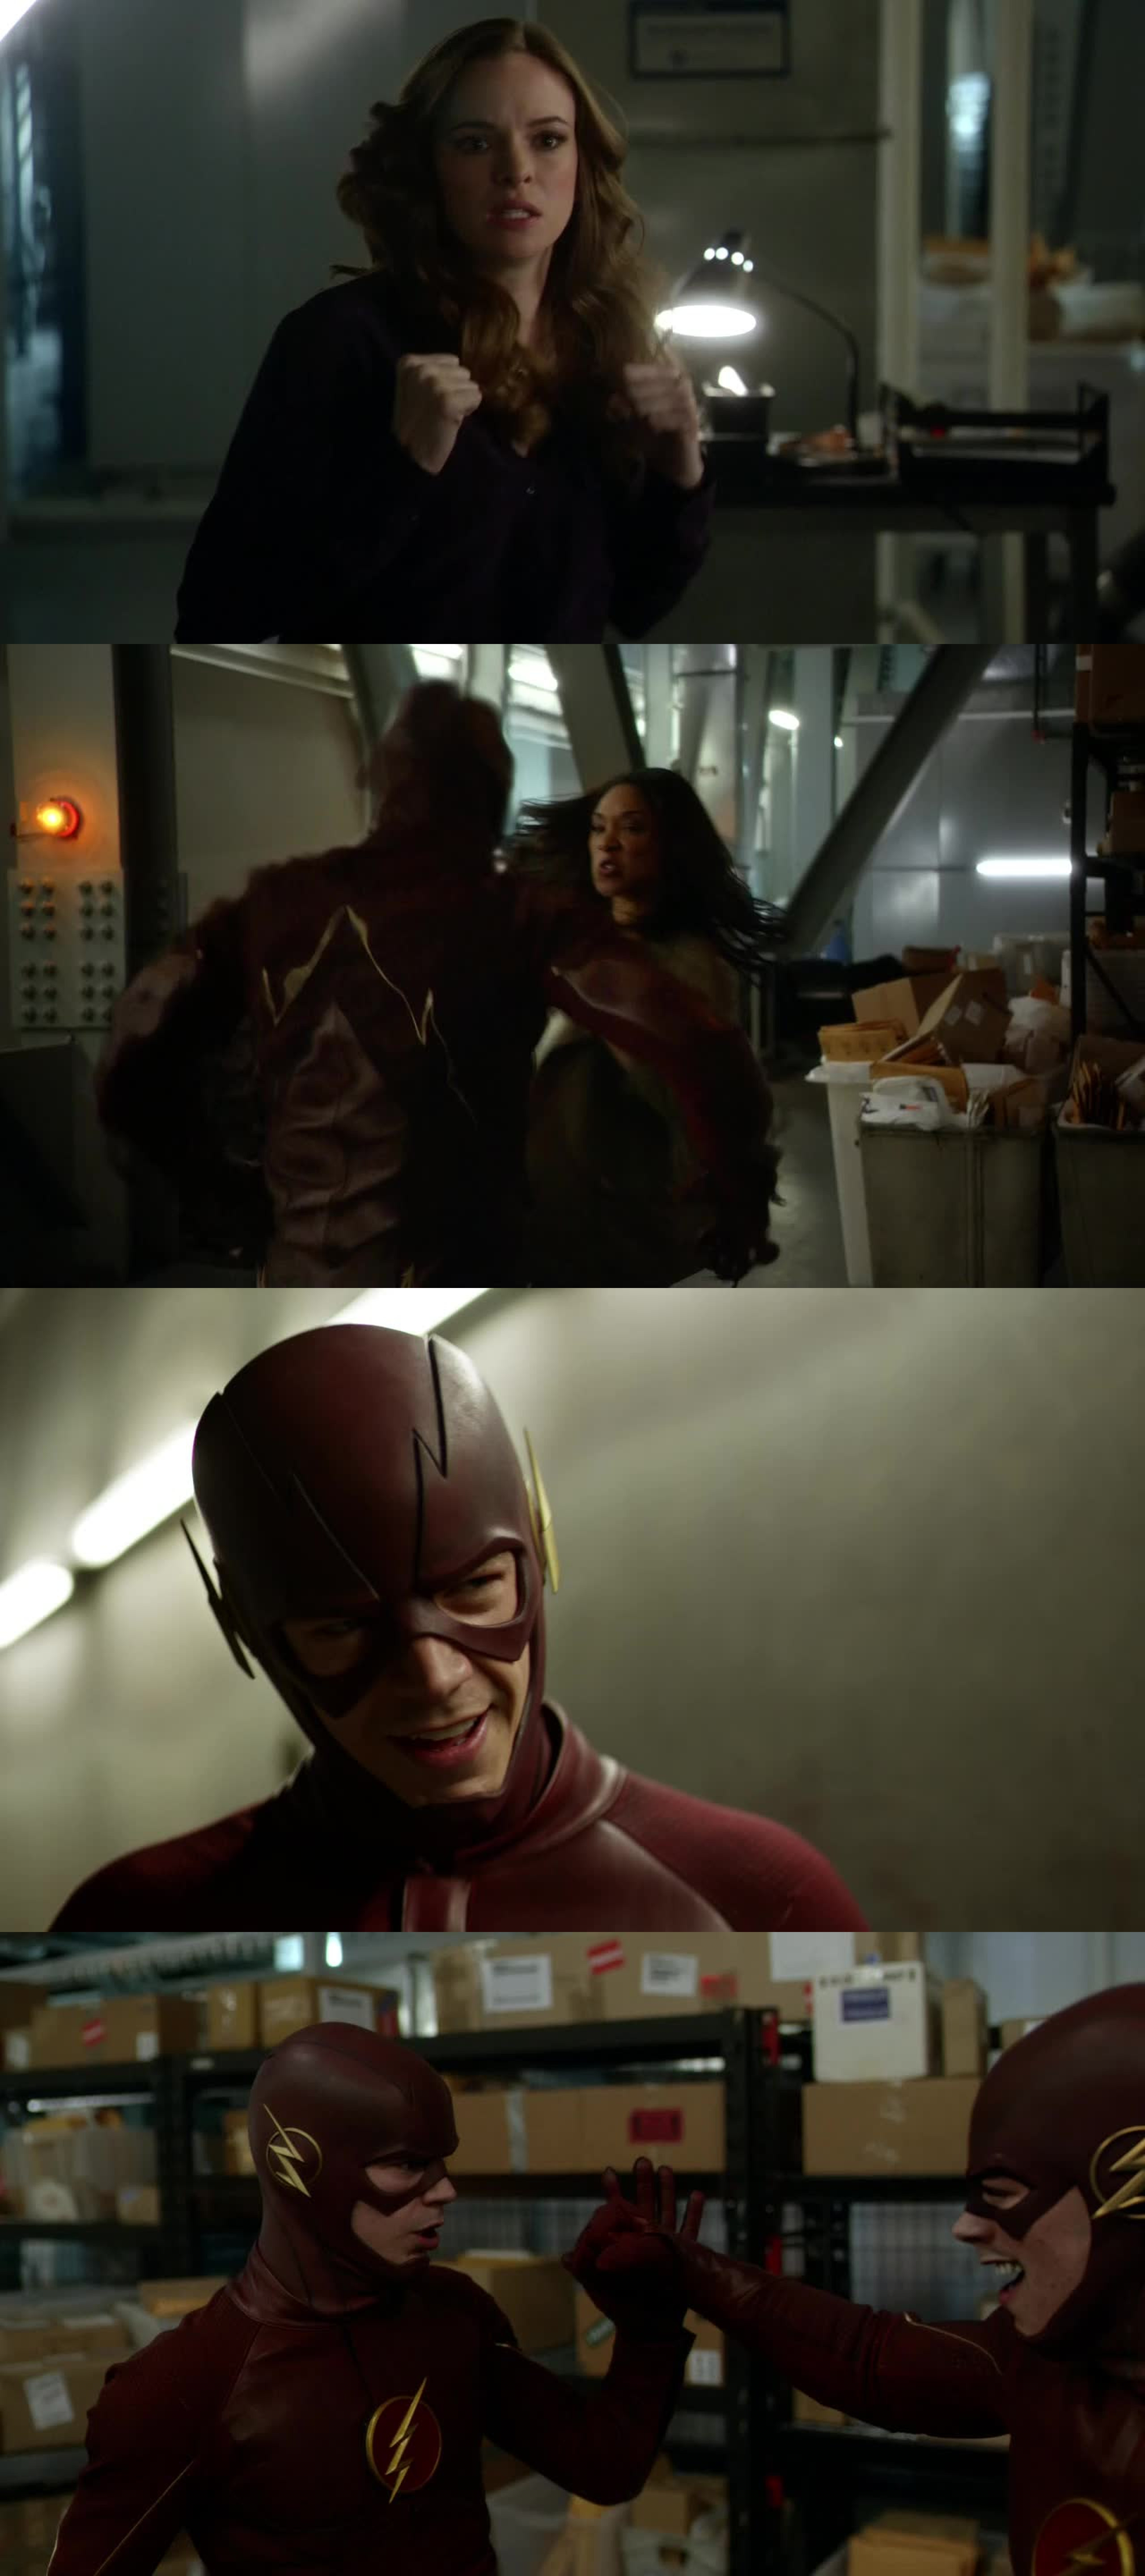 This was a fun scene! I'm glad we got to see Iris and Caitlin get in on the action. Then to see Barry fight himself, How fun!